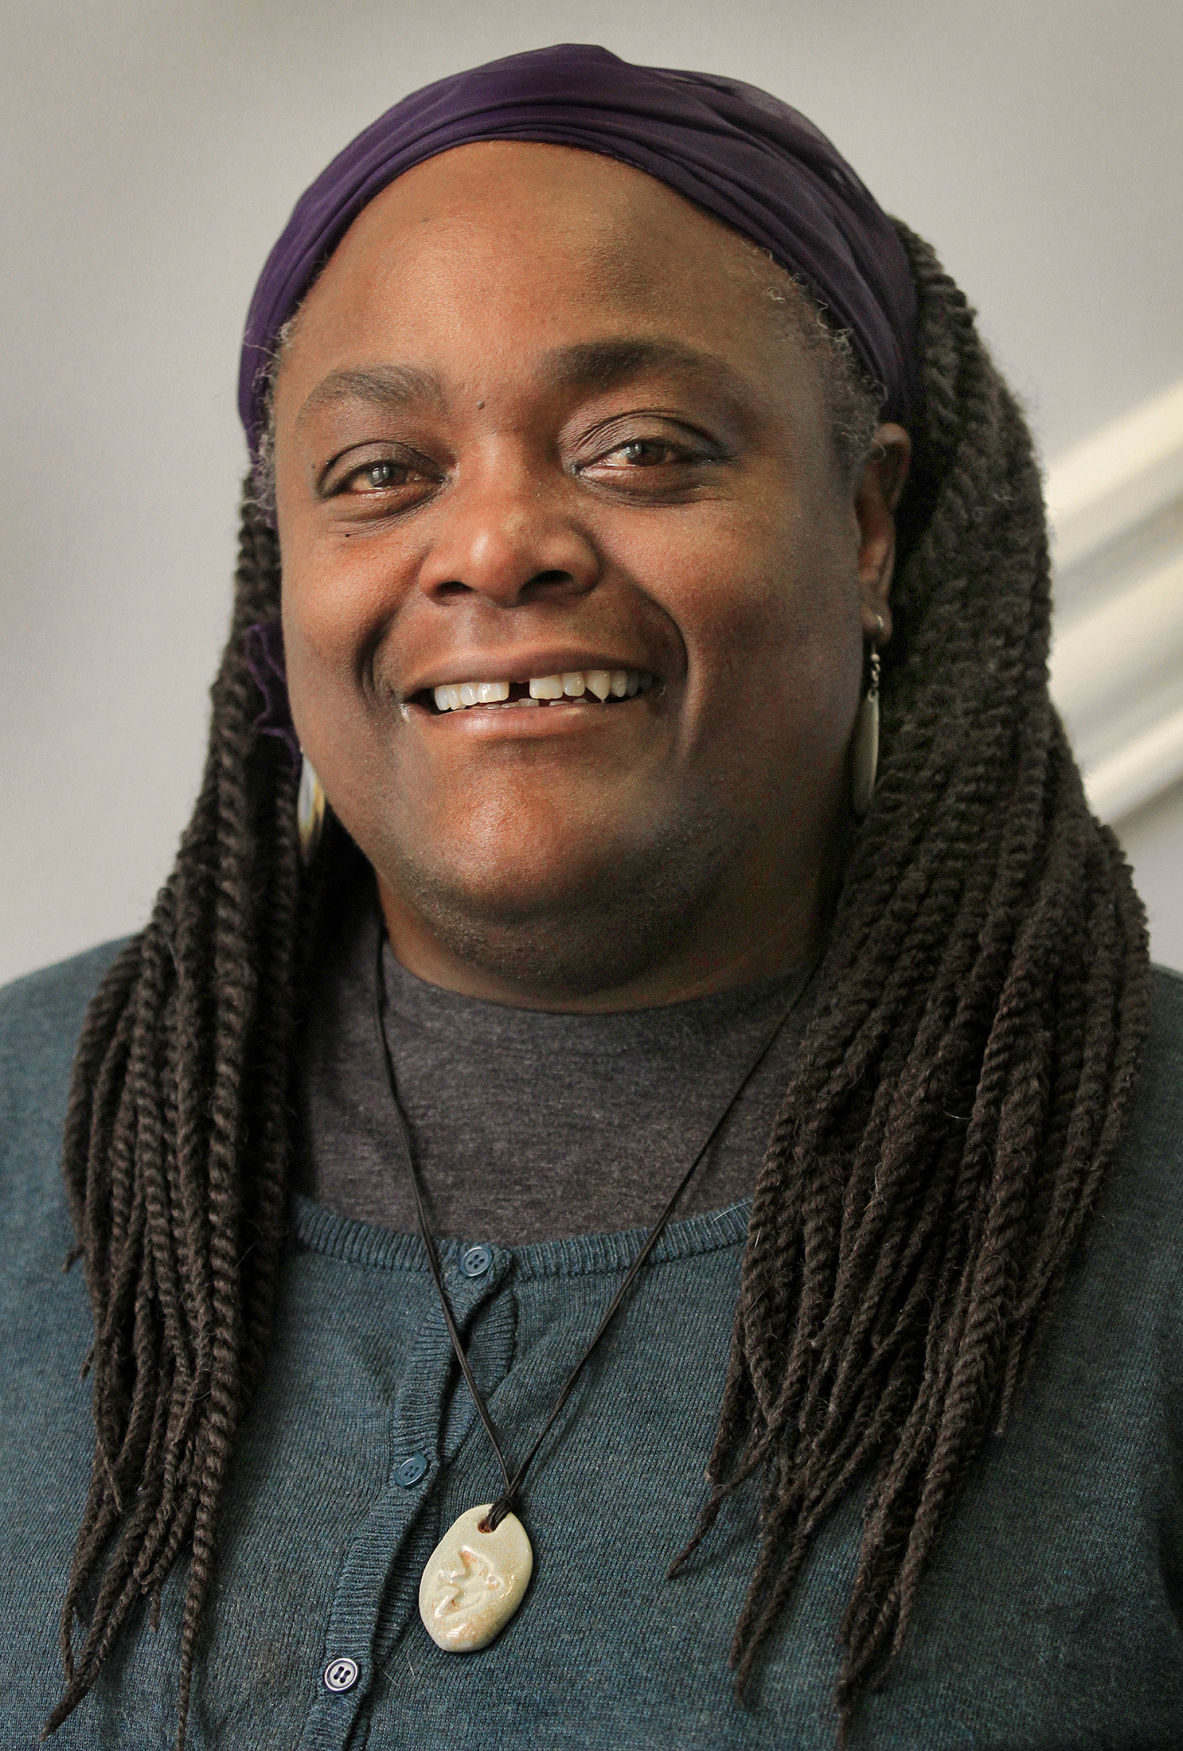 An expert on campus, Morris welcomes the hard conversations | Local